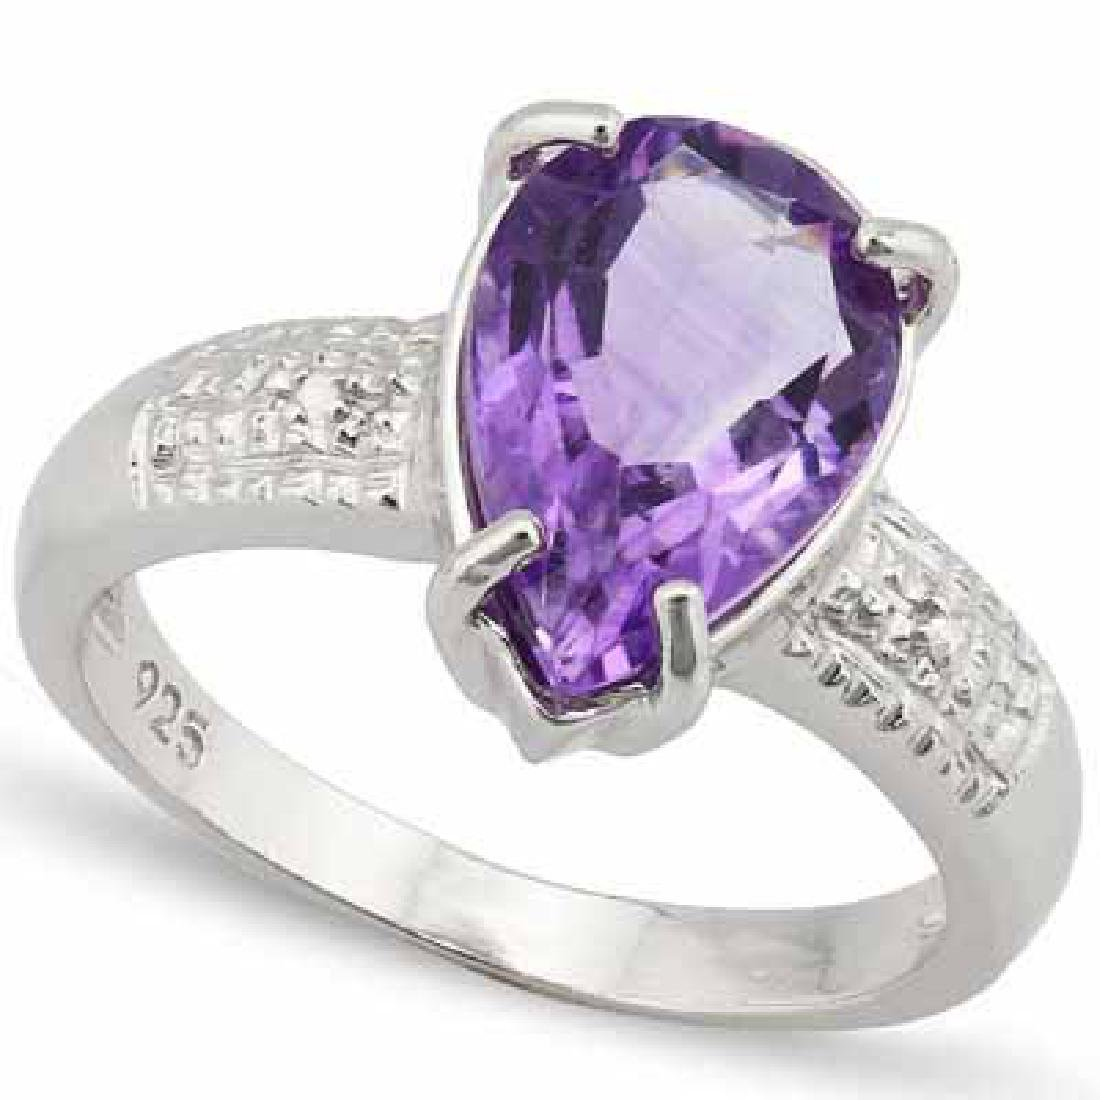 3.2 CARAT TW AMETHYST & GENUINE DIAMOND PLATINUM OVER 0